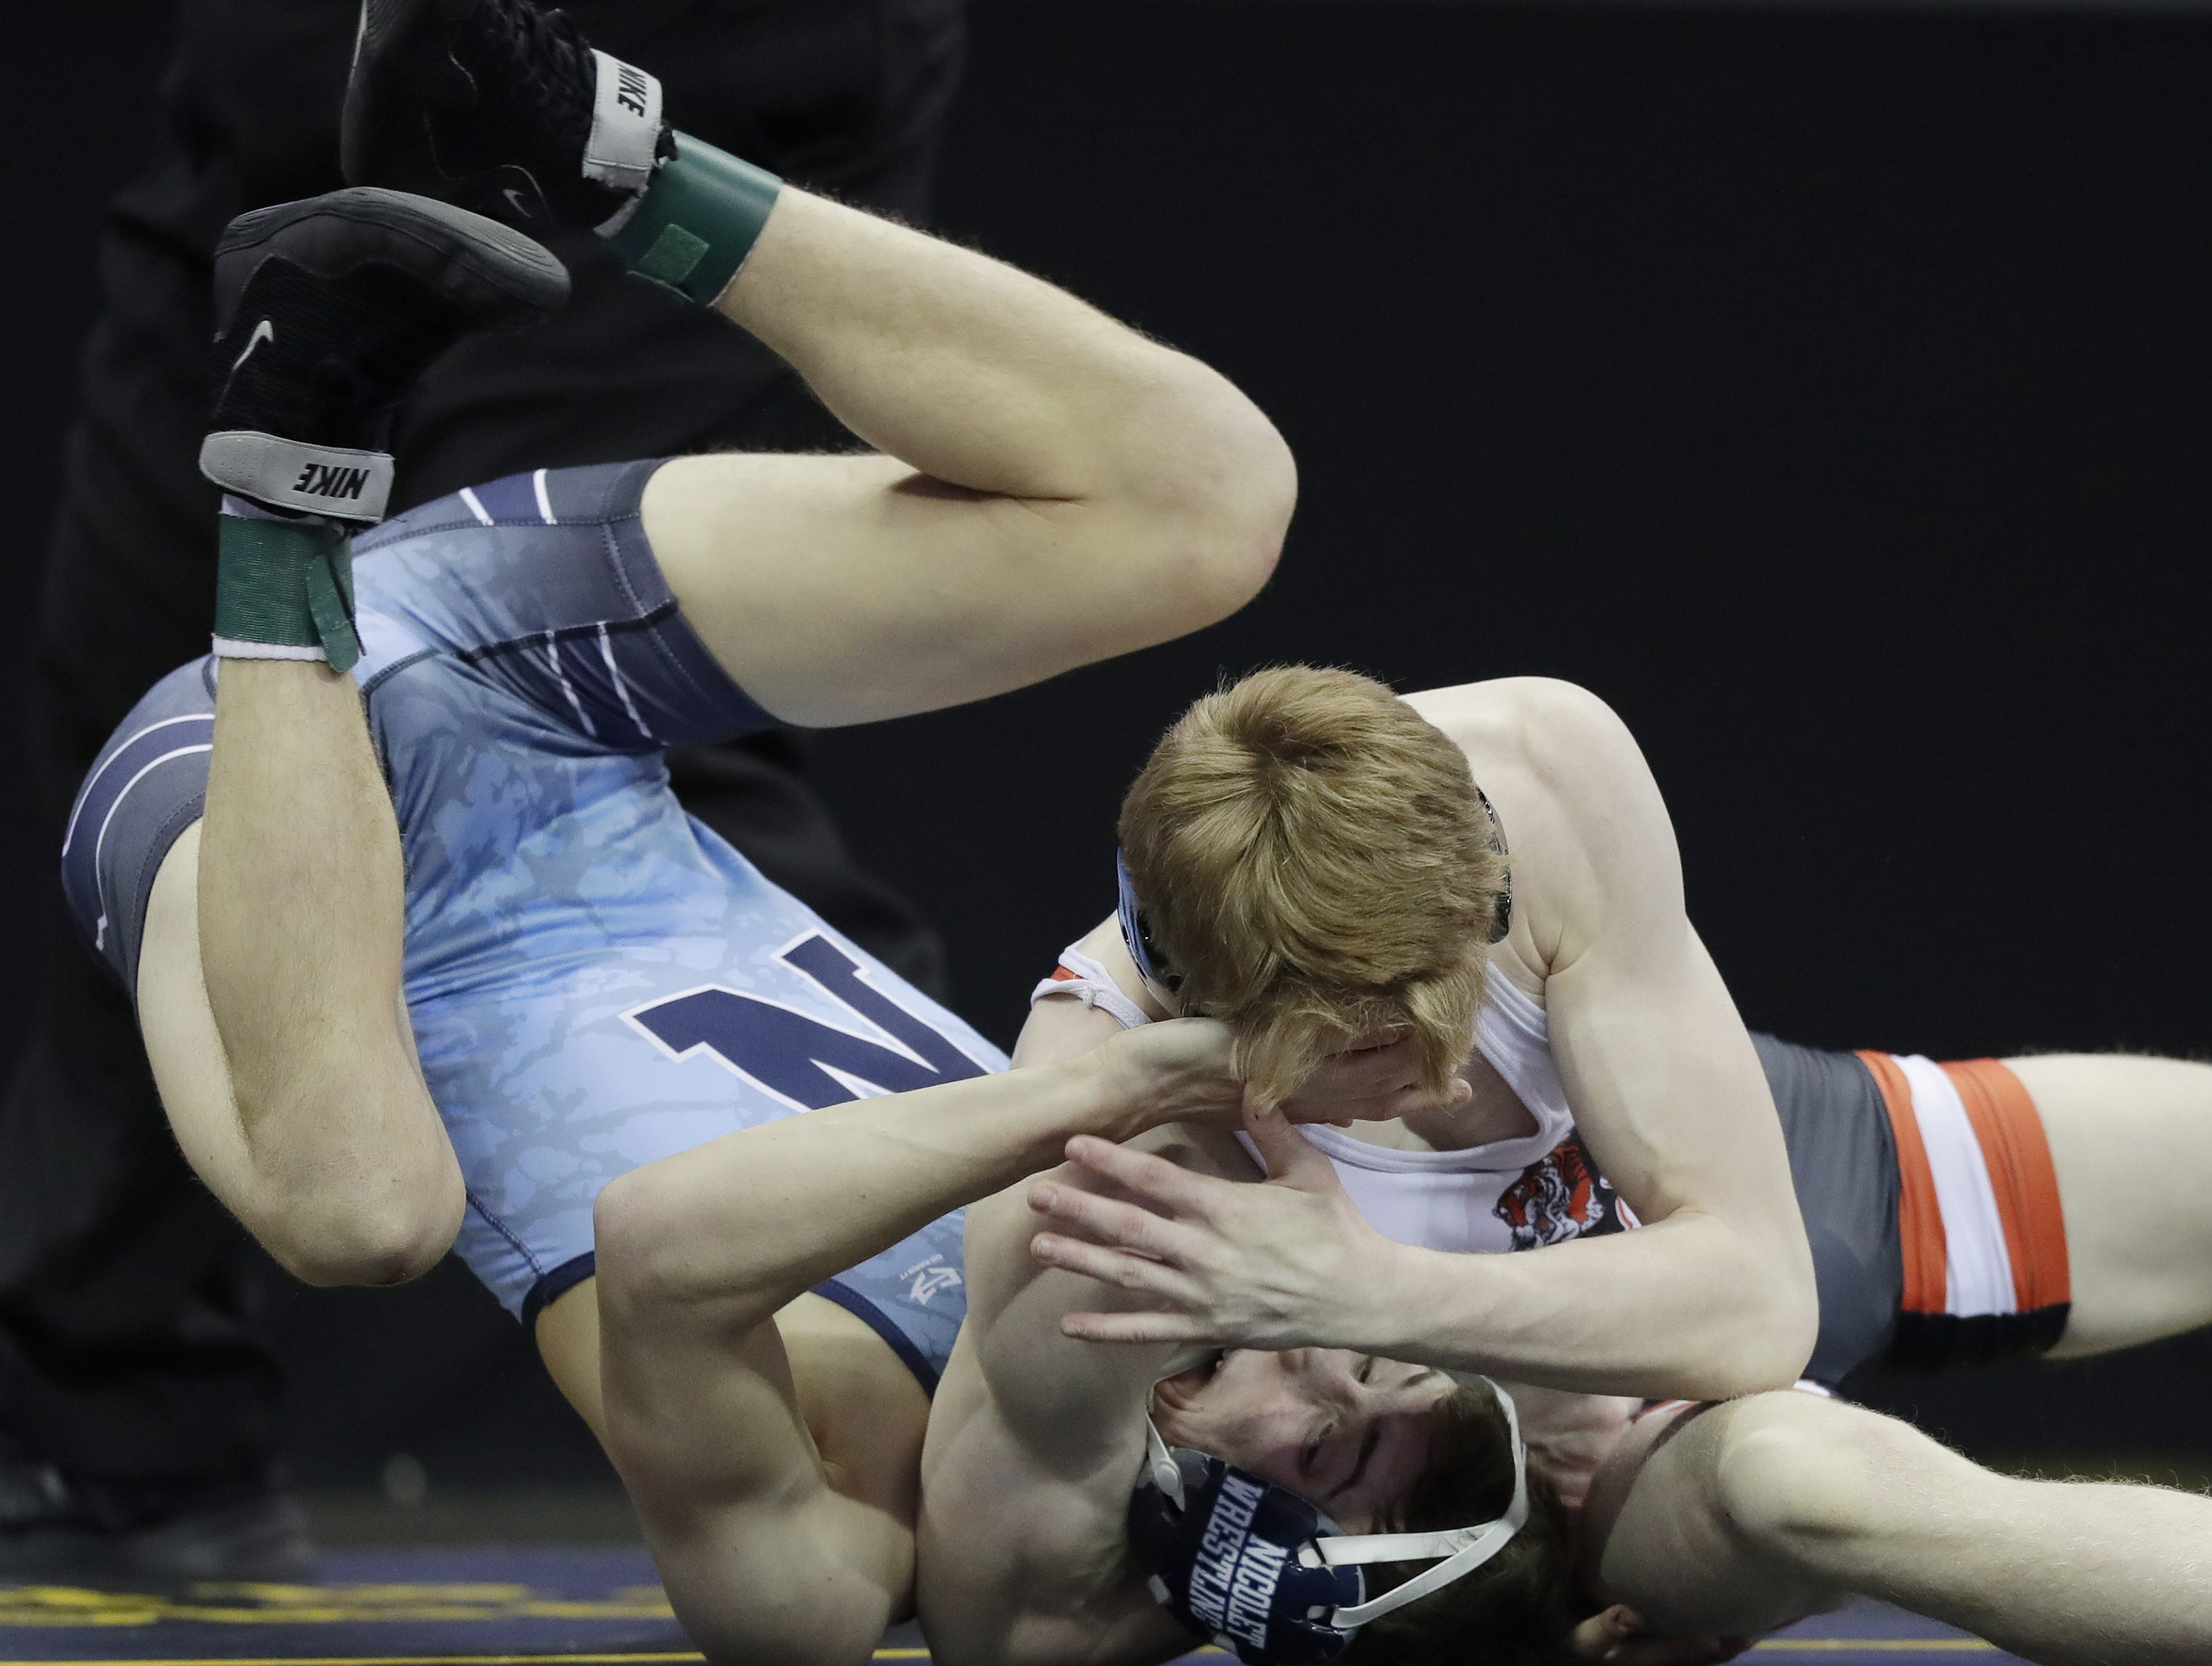 Marshfield's Ryan Dolezal wrestles Nicolet's Ryan Kuesel in a Division 1 132-pound preliminary match at the WIAA state individual wrestling tournament at the Kohl Center on Thursday, February 21, 2019 in Madison, Wis. Adam Wesley/USA TODAY NETWORK-Wisconsin